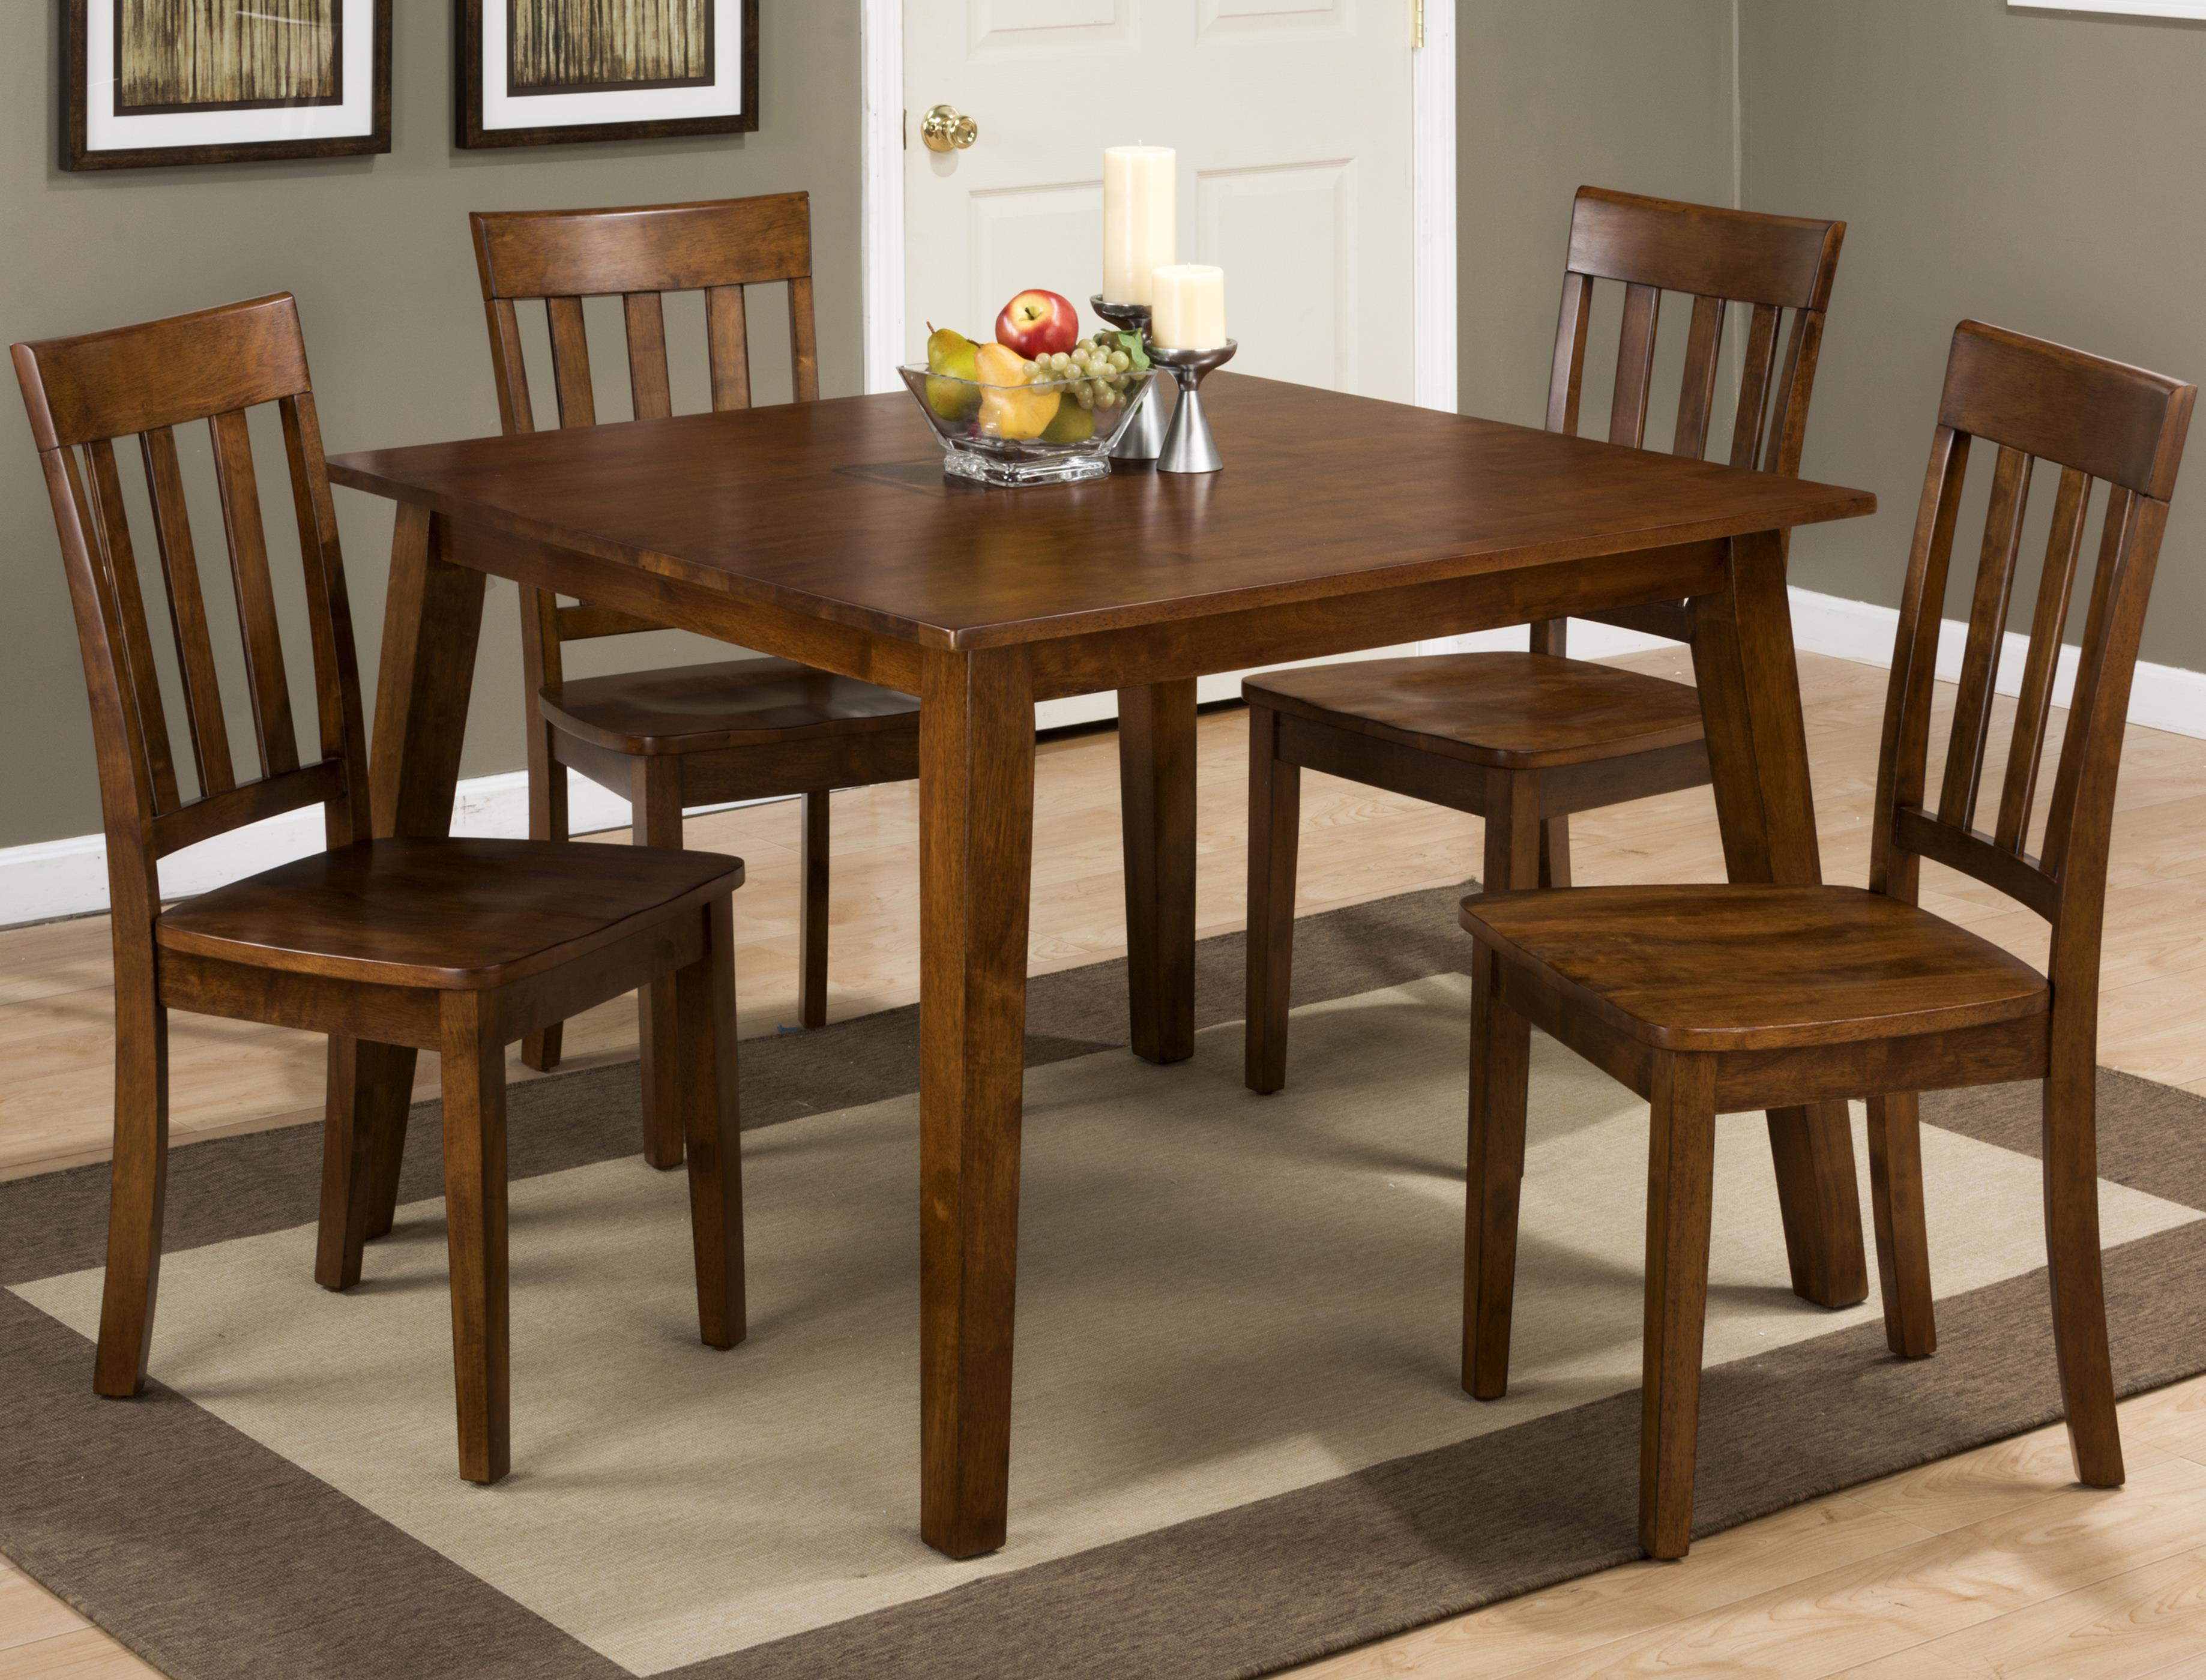 Jofran 3x3x3: Caramel Square Table And 4 Chair Set   Item Number: 452